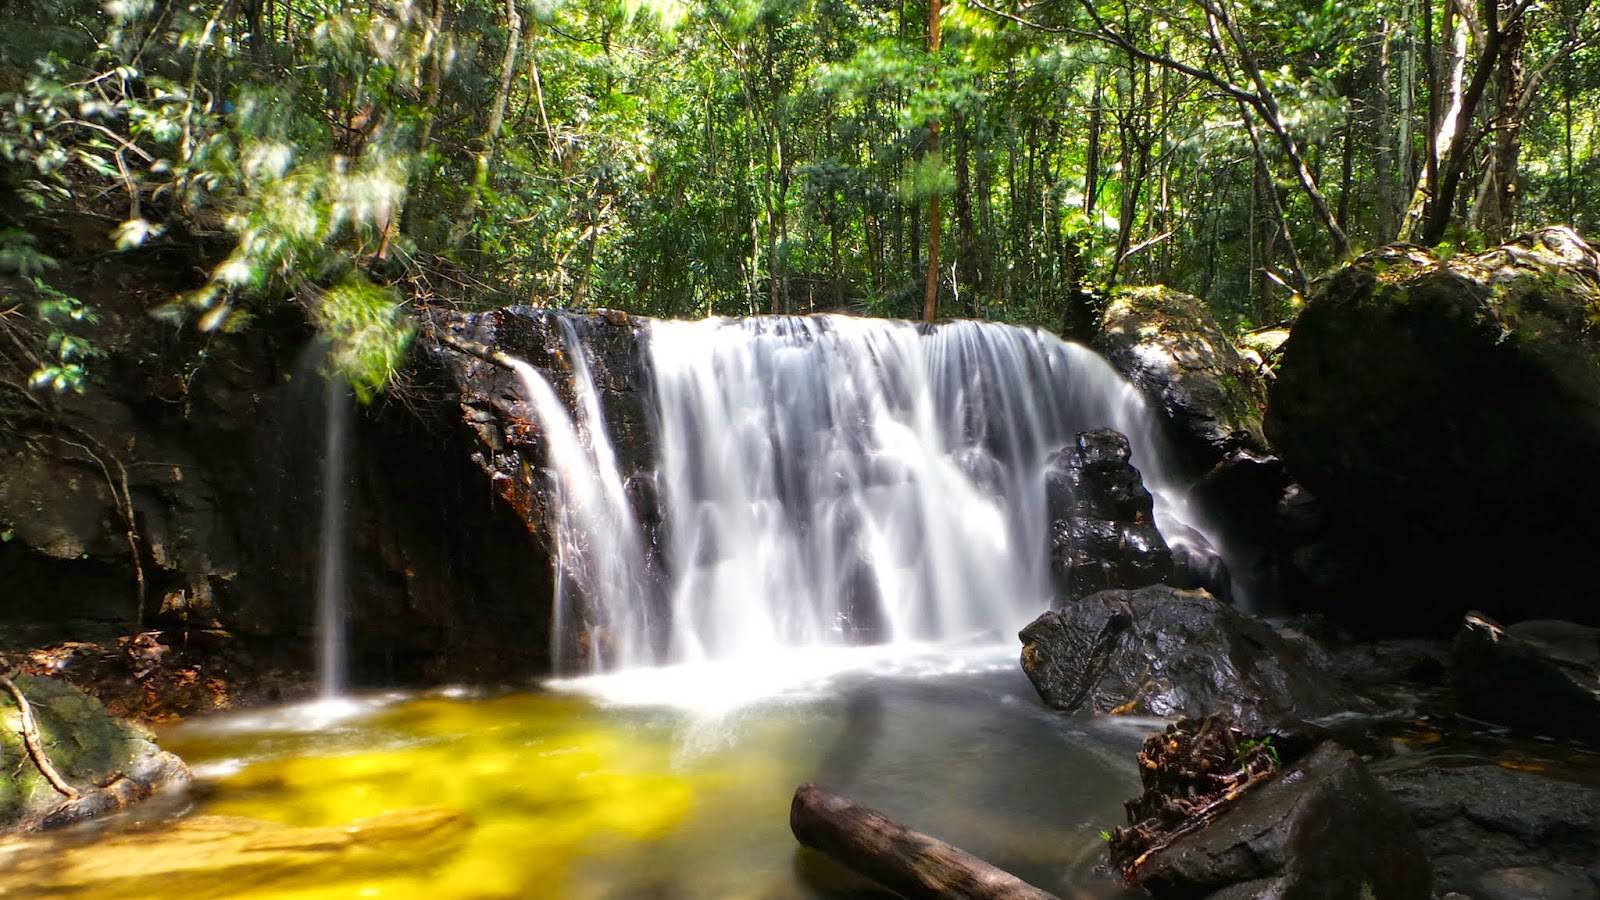 Tranh Waterfall in Phu quoc National Park